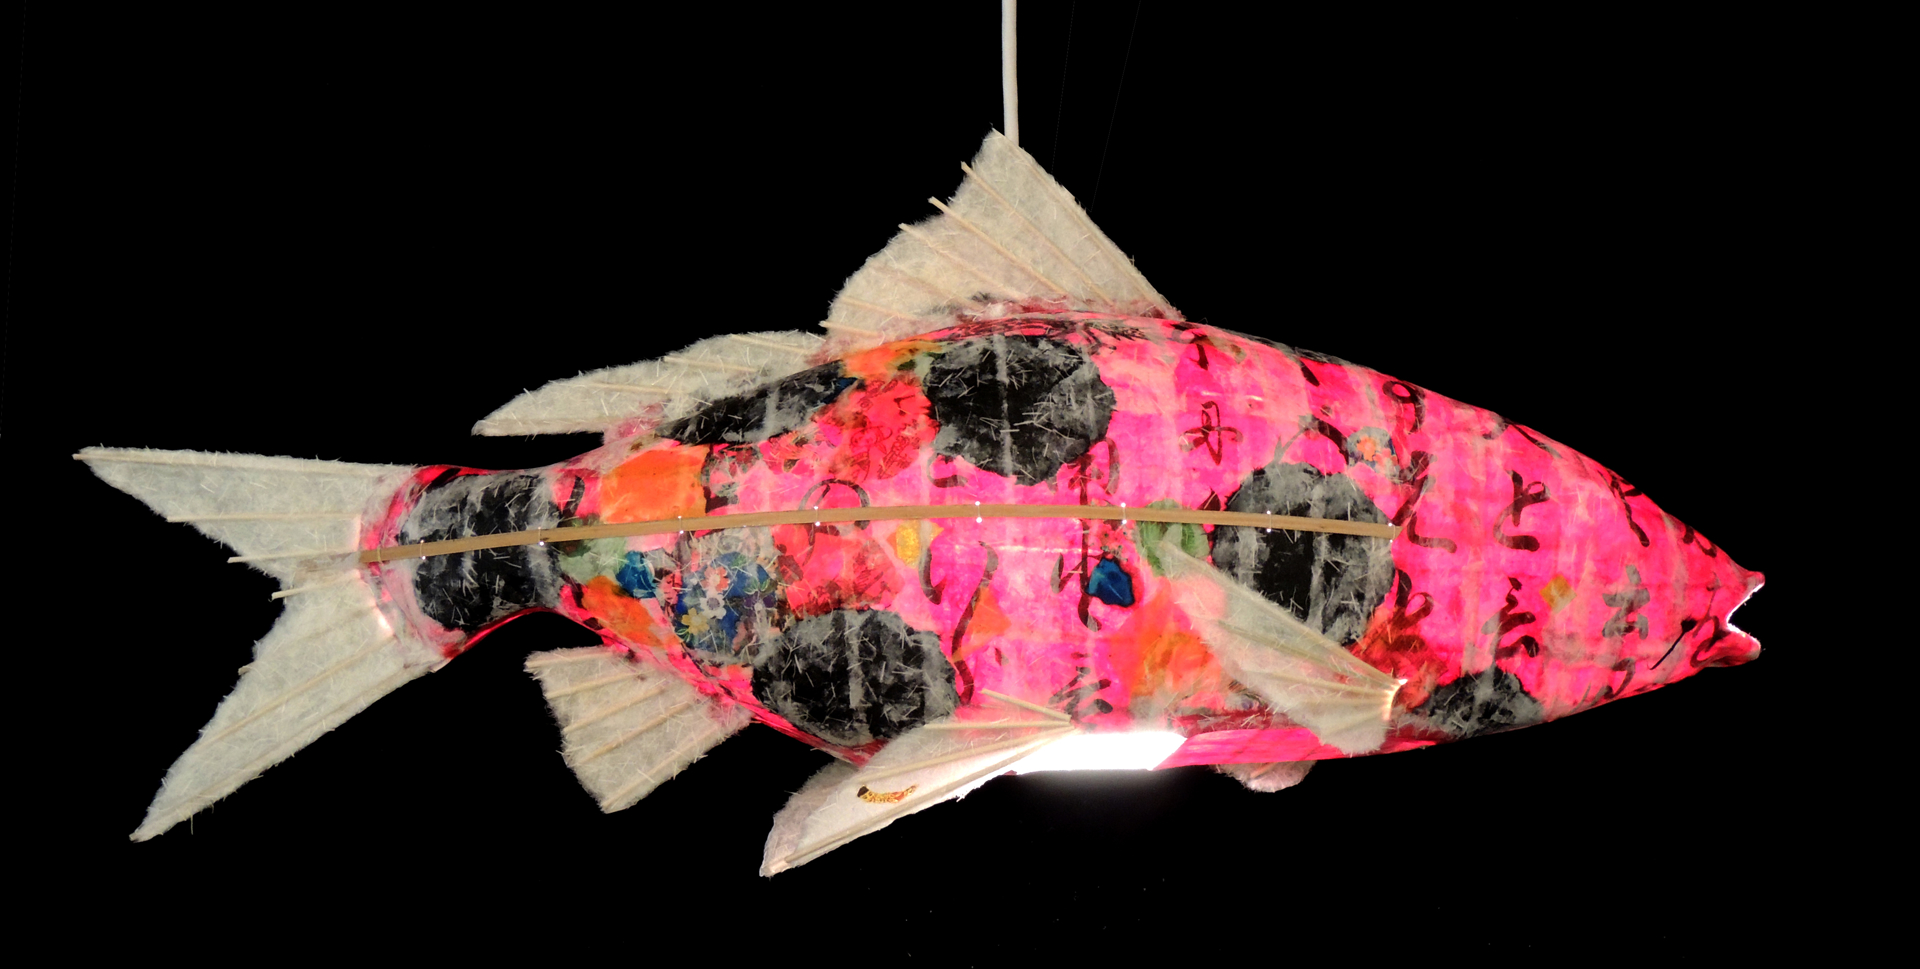 Ruby Koi Chandelier by Elaine Hanowell